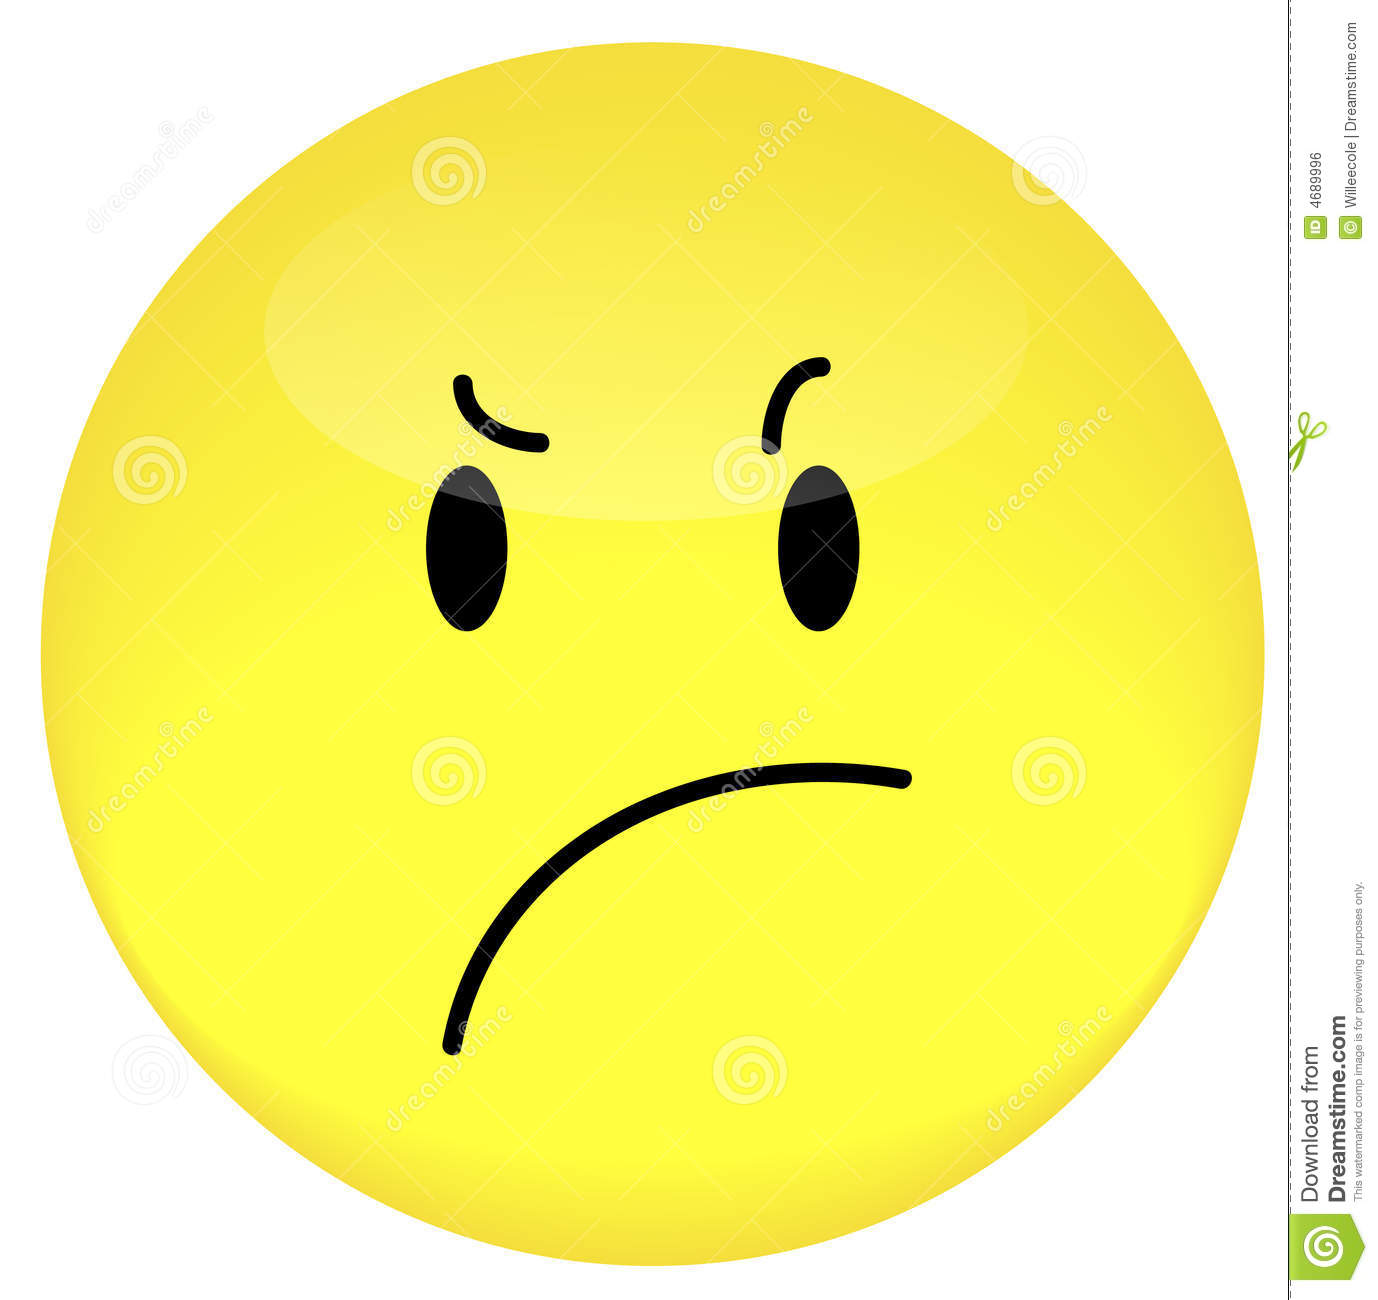 frustrated smiley face stock vector illustration of illustration rh dreamstime com